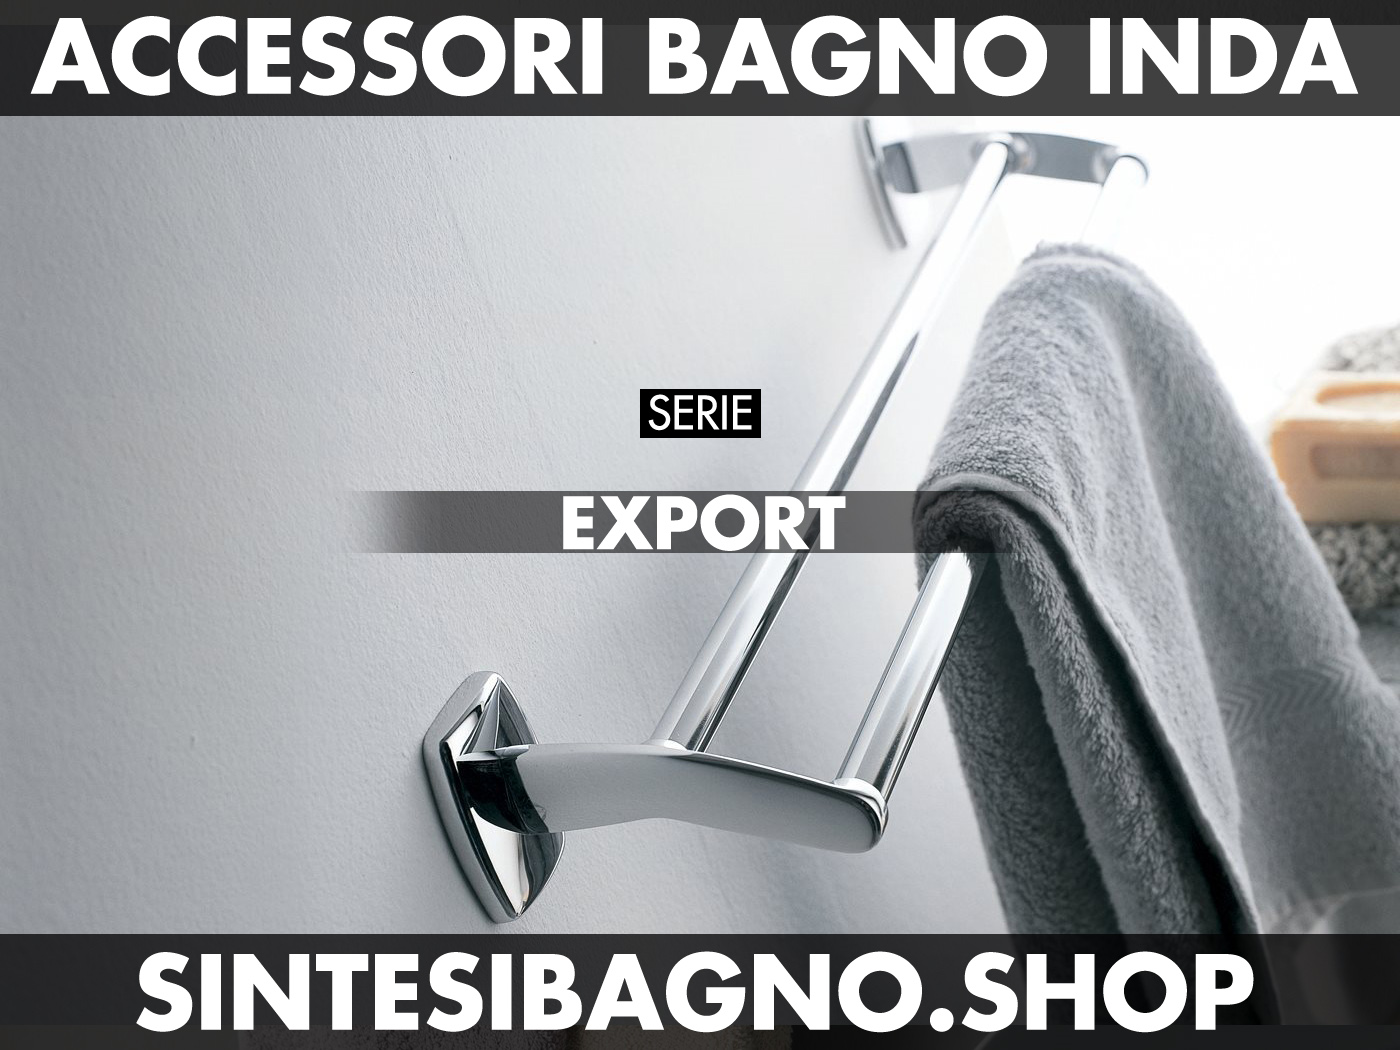 Accessori Bagno Inda serie EXPORT